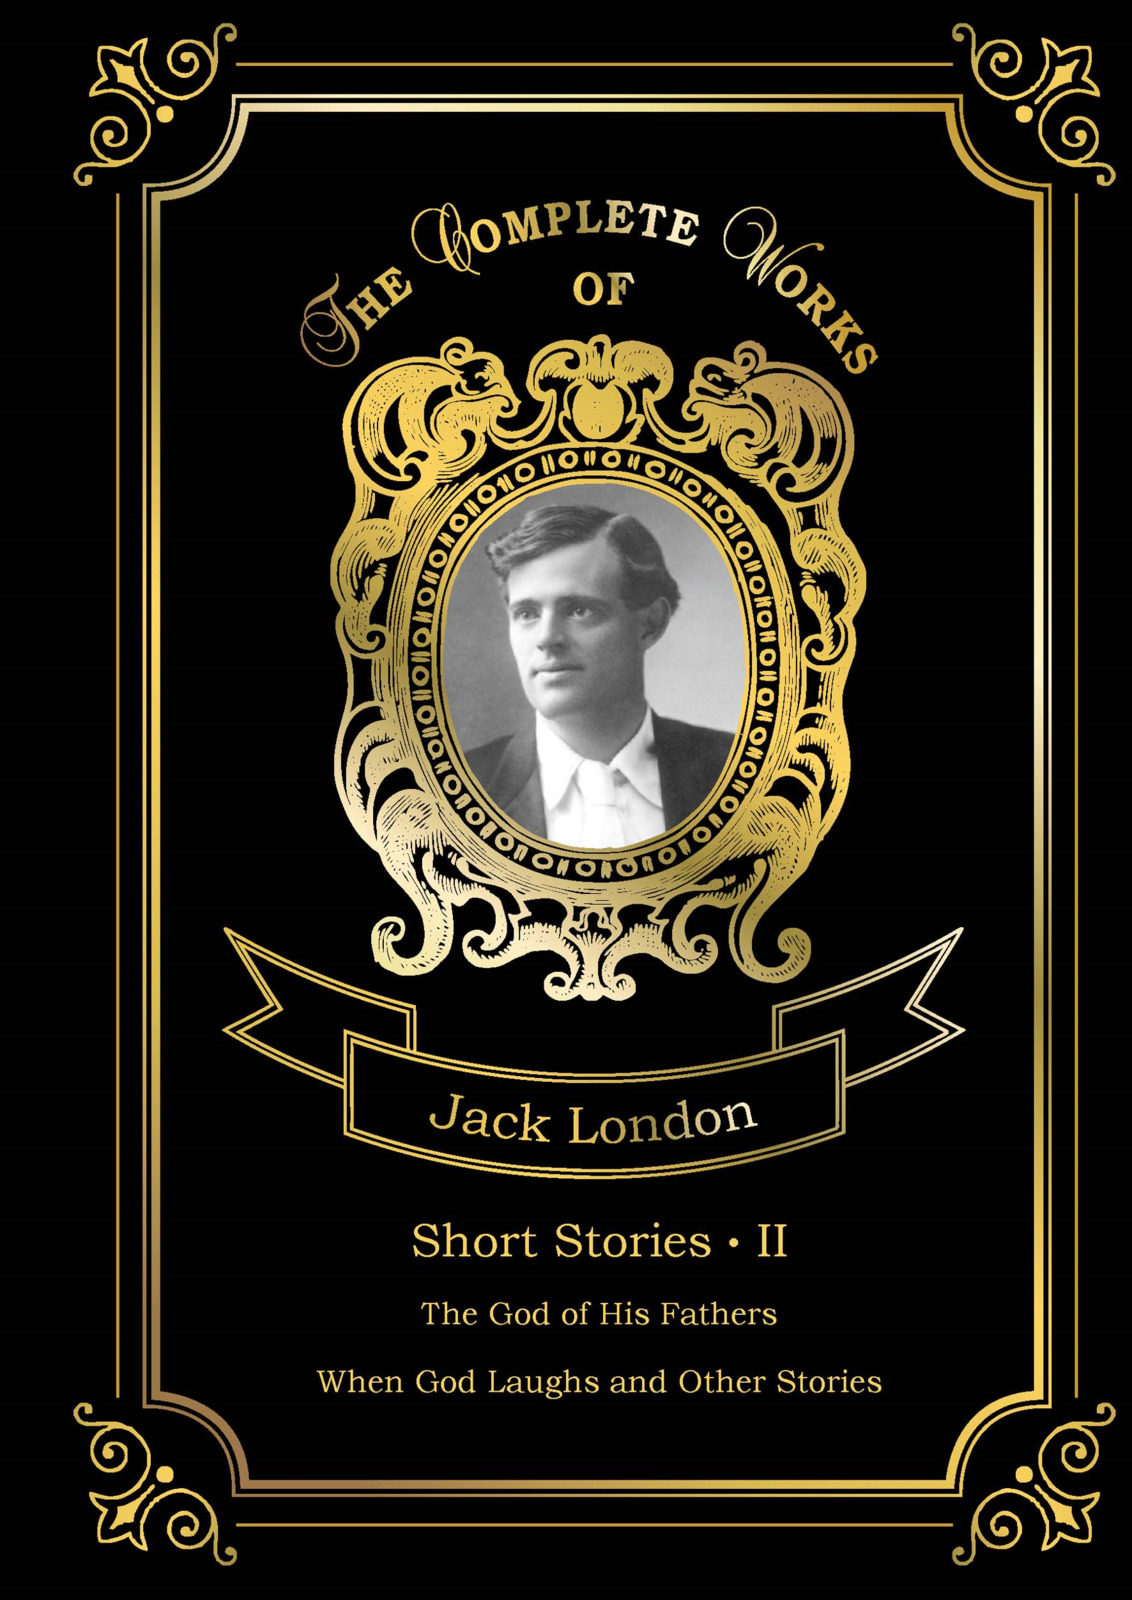 Jack London Short Stories II victims stories and the advancement of human rights